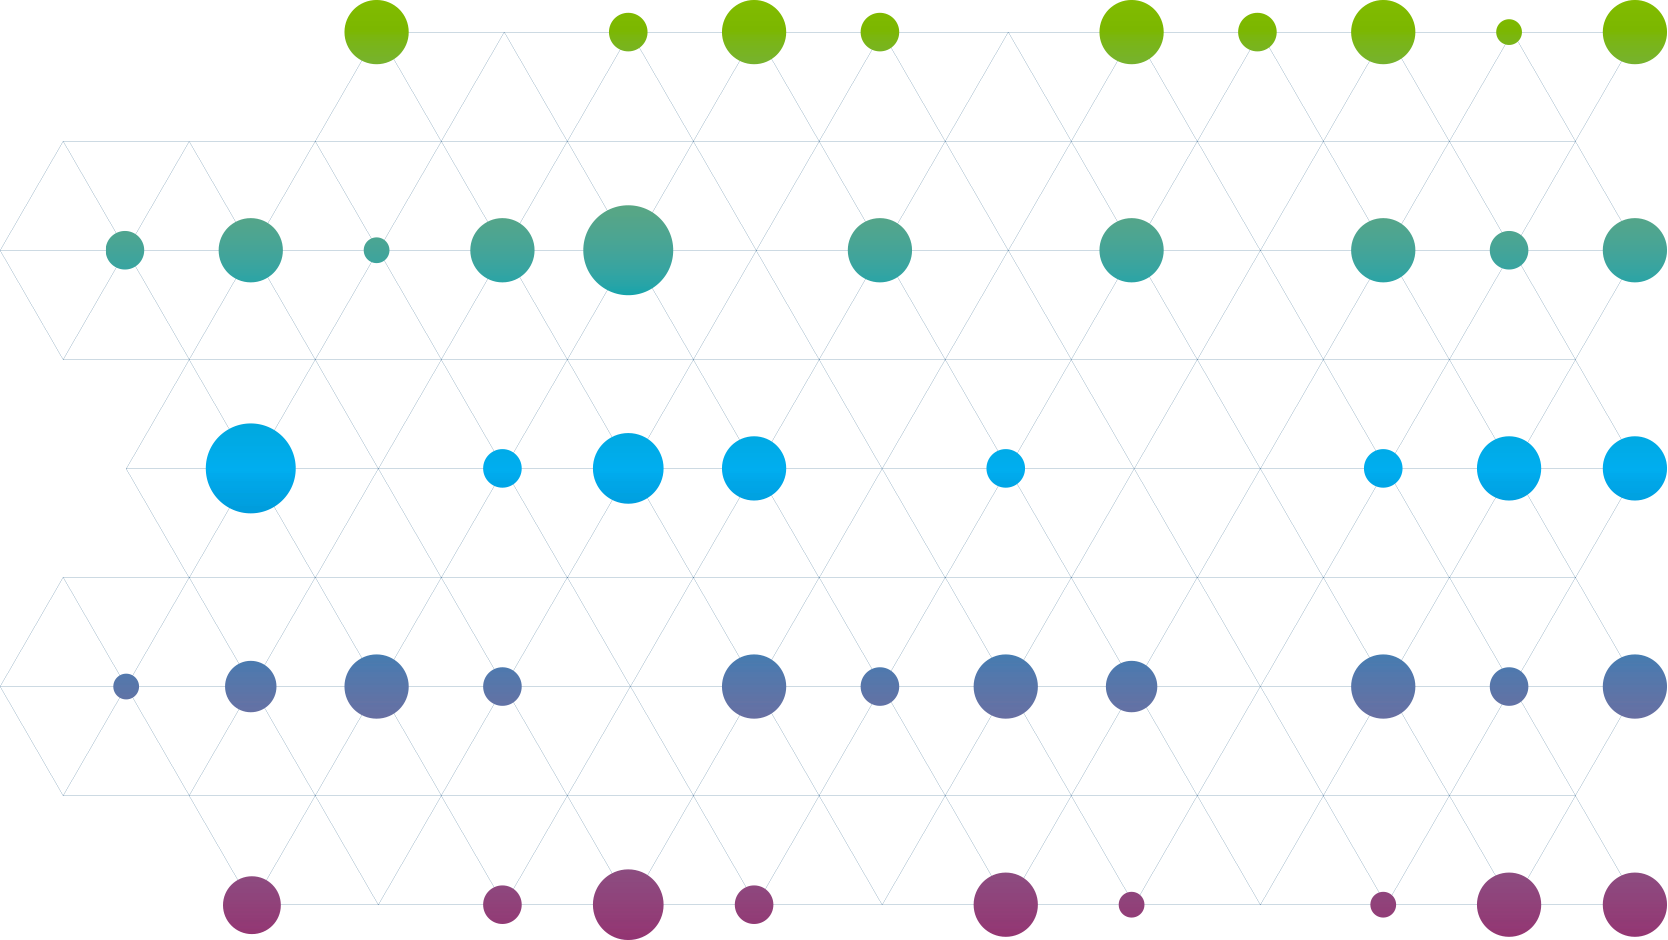 Dot Network Bg